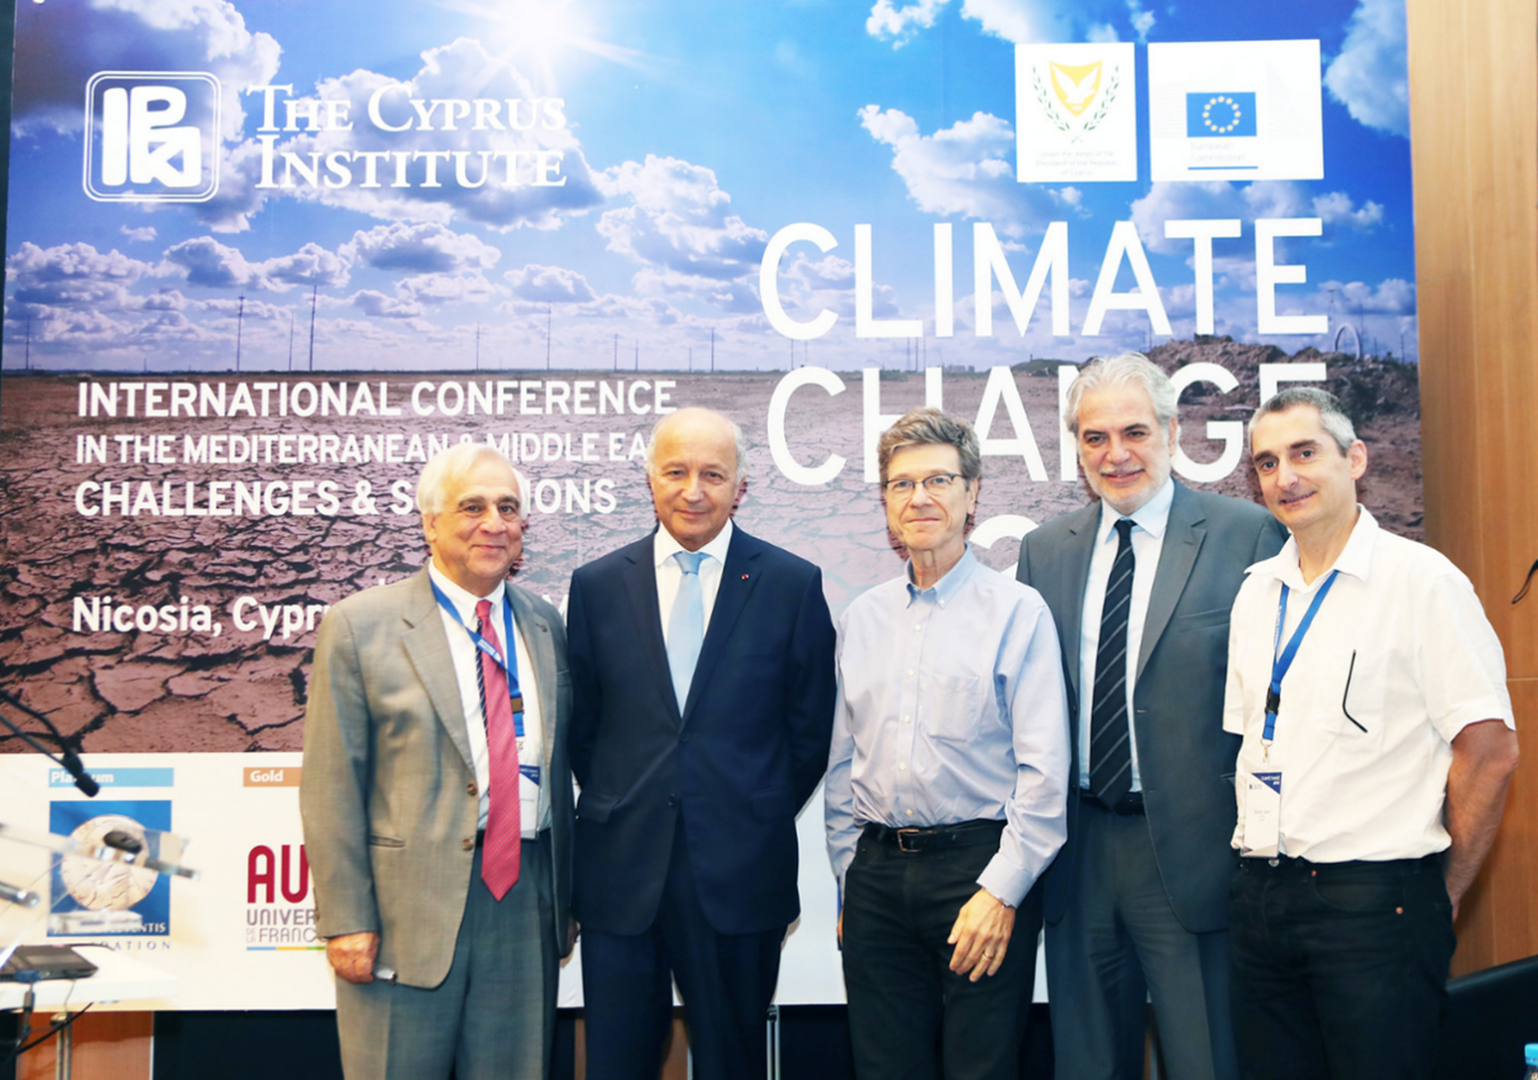 Cyprus Climate Change Initiative